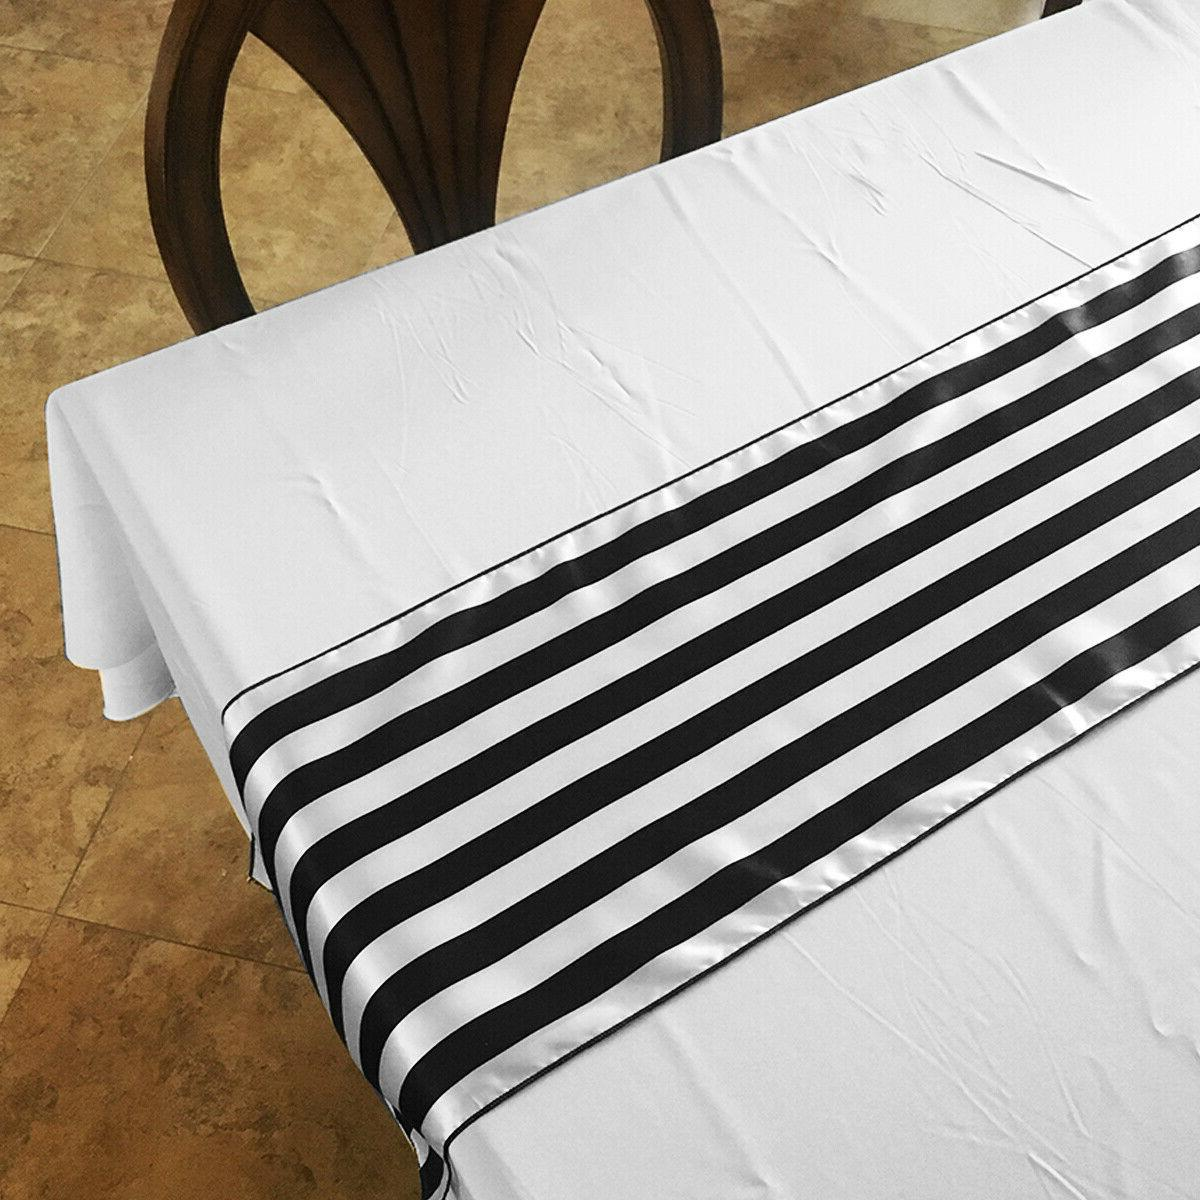 Pack of Satin 1 Inch Striped Runners For